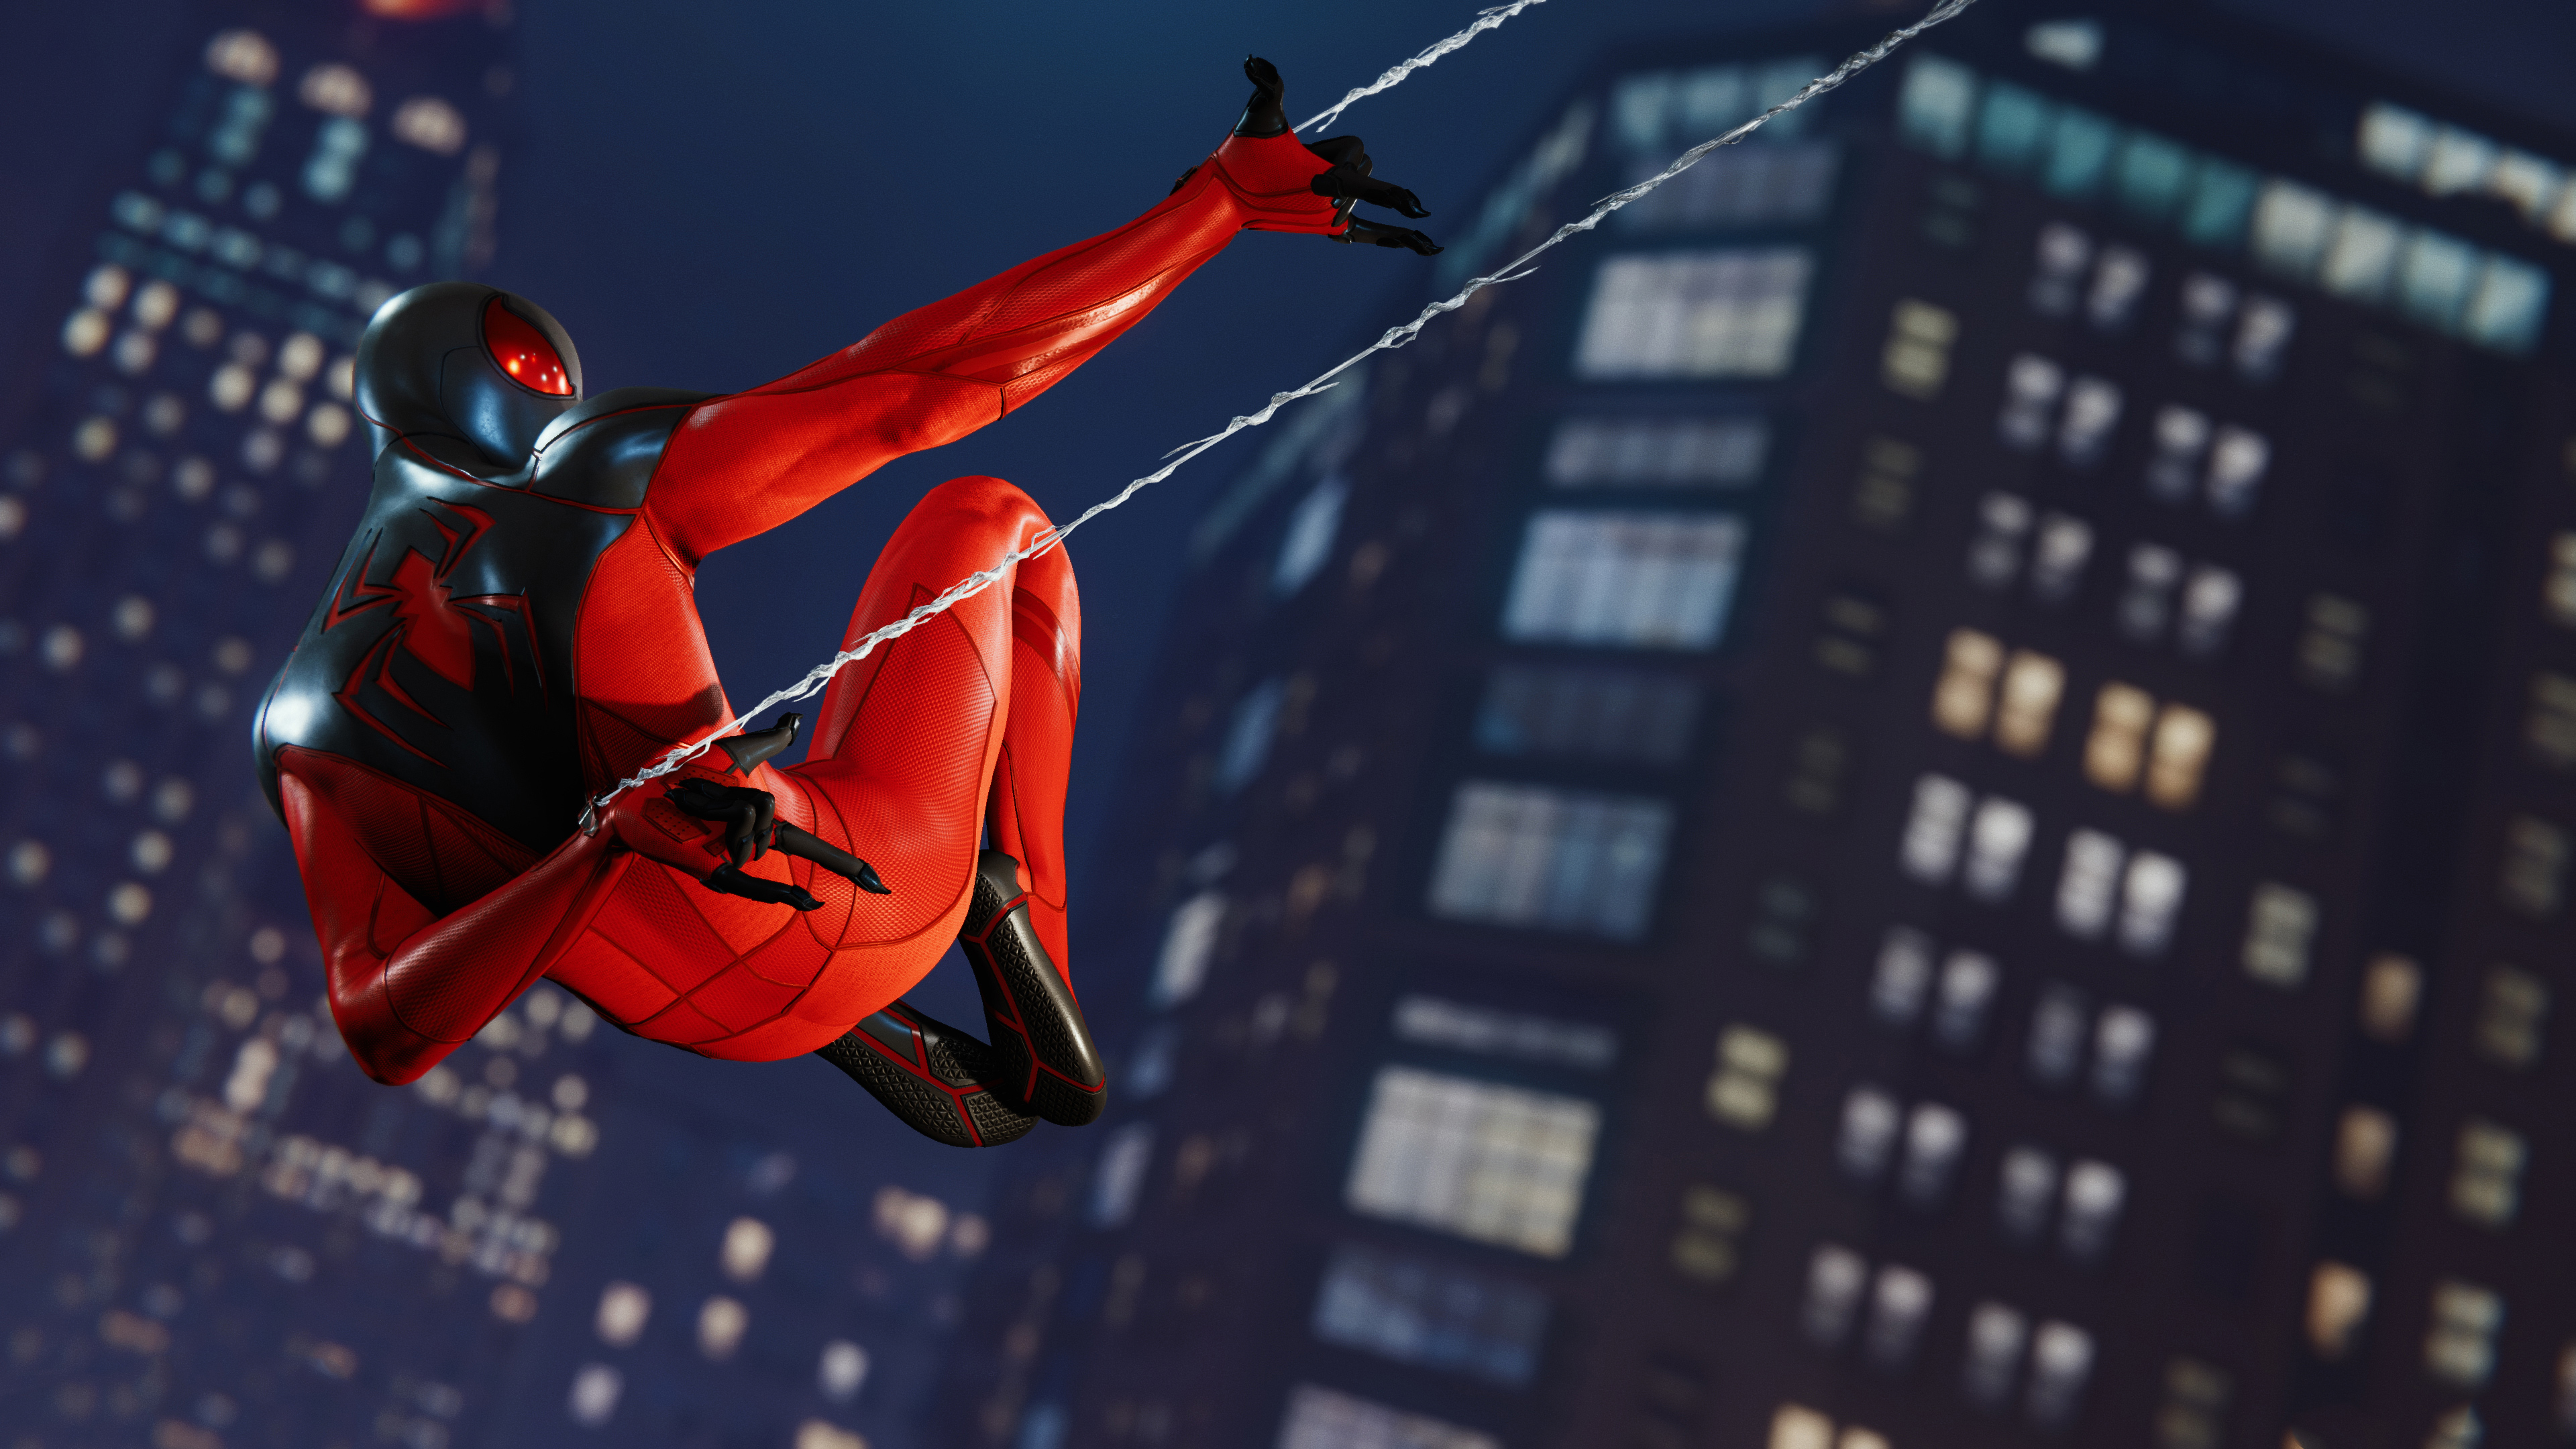 Scarlet Spiderman Ps4 - #GolfClub